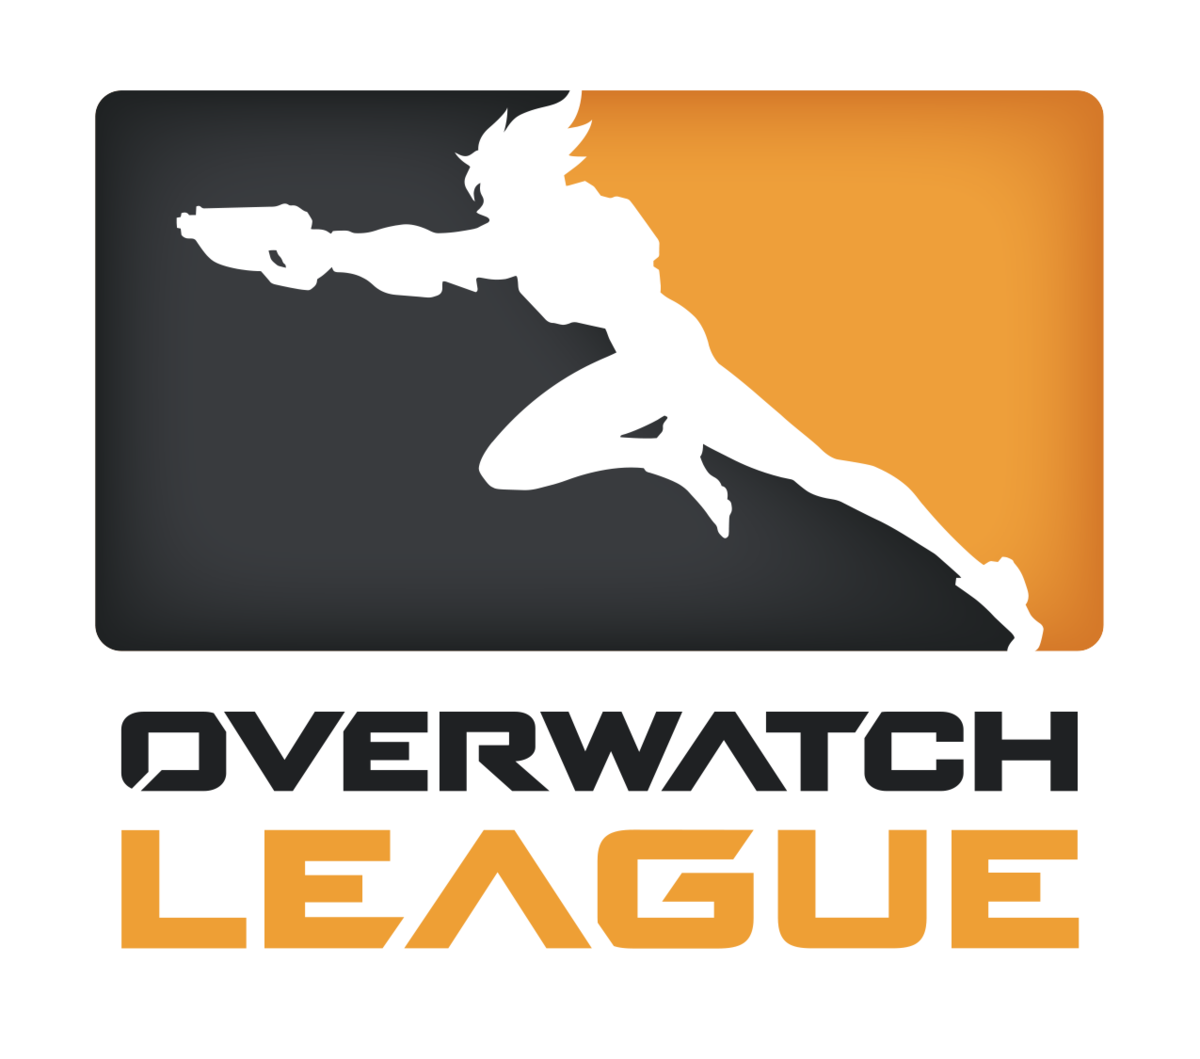 Overwatch League 2020 - February